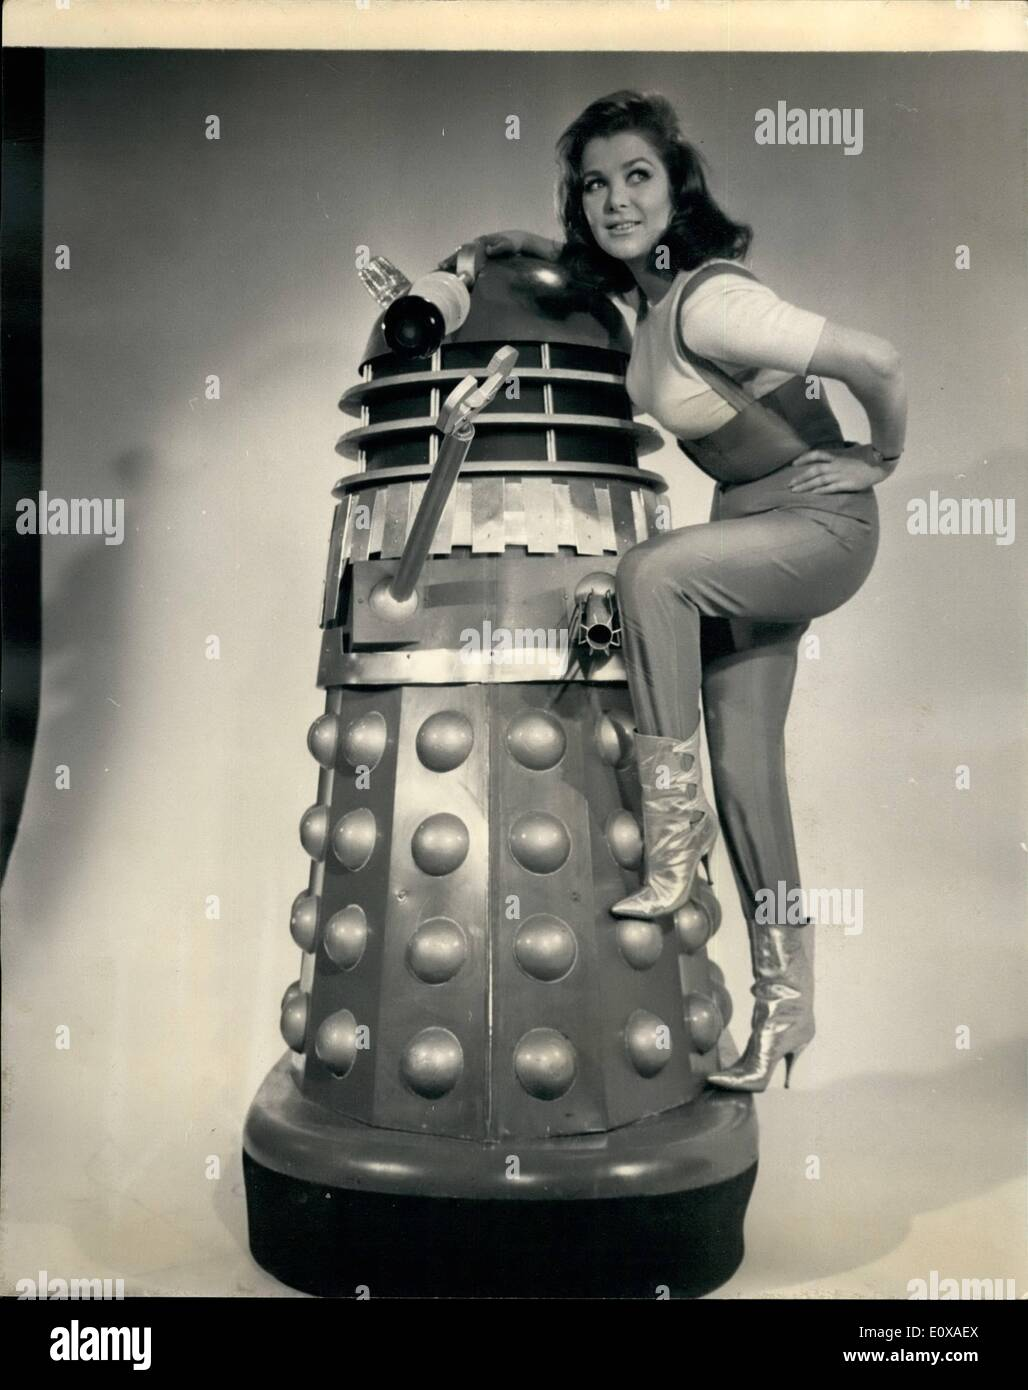 Jan. 01, 1966 - Jill's a Girl With A Future: 24-year old Jill Curzon has been chosen for the feminine lead in the new film about the Daleks which starts shooting at Shepperton Studios on January 31. It is entitled Daleks Invade Earth 2150 A.B., in which year most of the action takes place. Jill might be said to have a 200 year future. Peter Cushing will again Dr.Who on the big screen as he hid in ''Dr.Who and the Daleks'' and the new story will also be filmed in Technicolor and Techniscope. The executive producer is Joe Vegoda. The producers are Milton Subotsky and Max J.Rosenberg - Stock Image